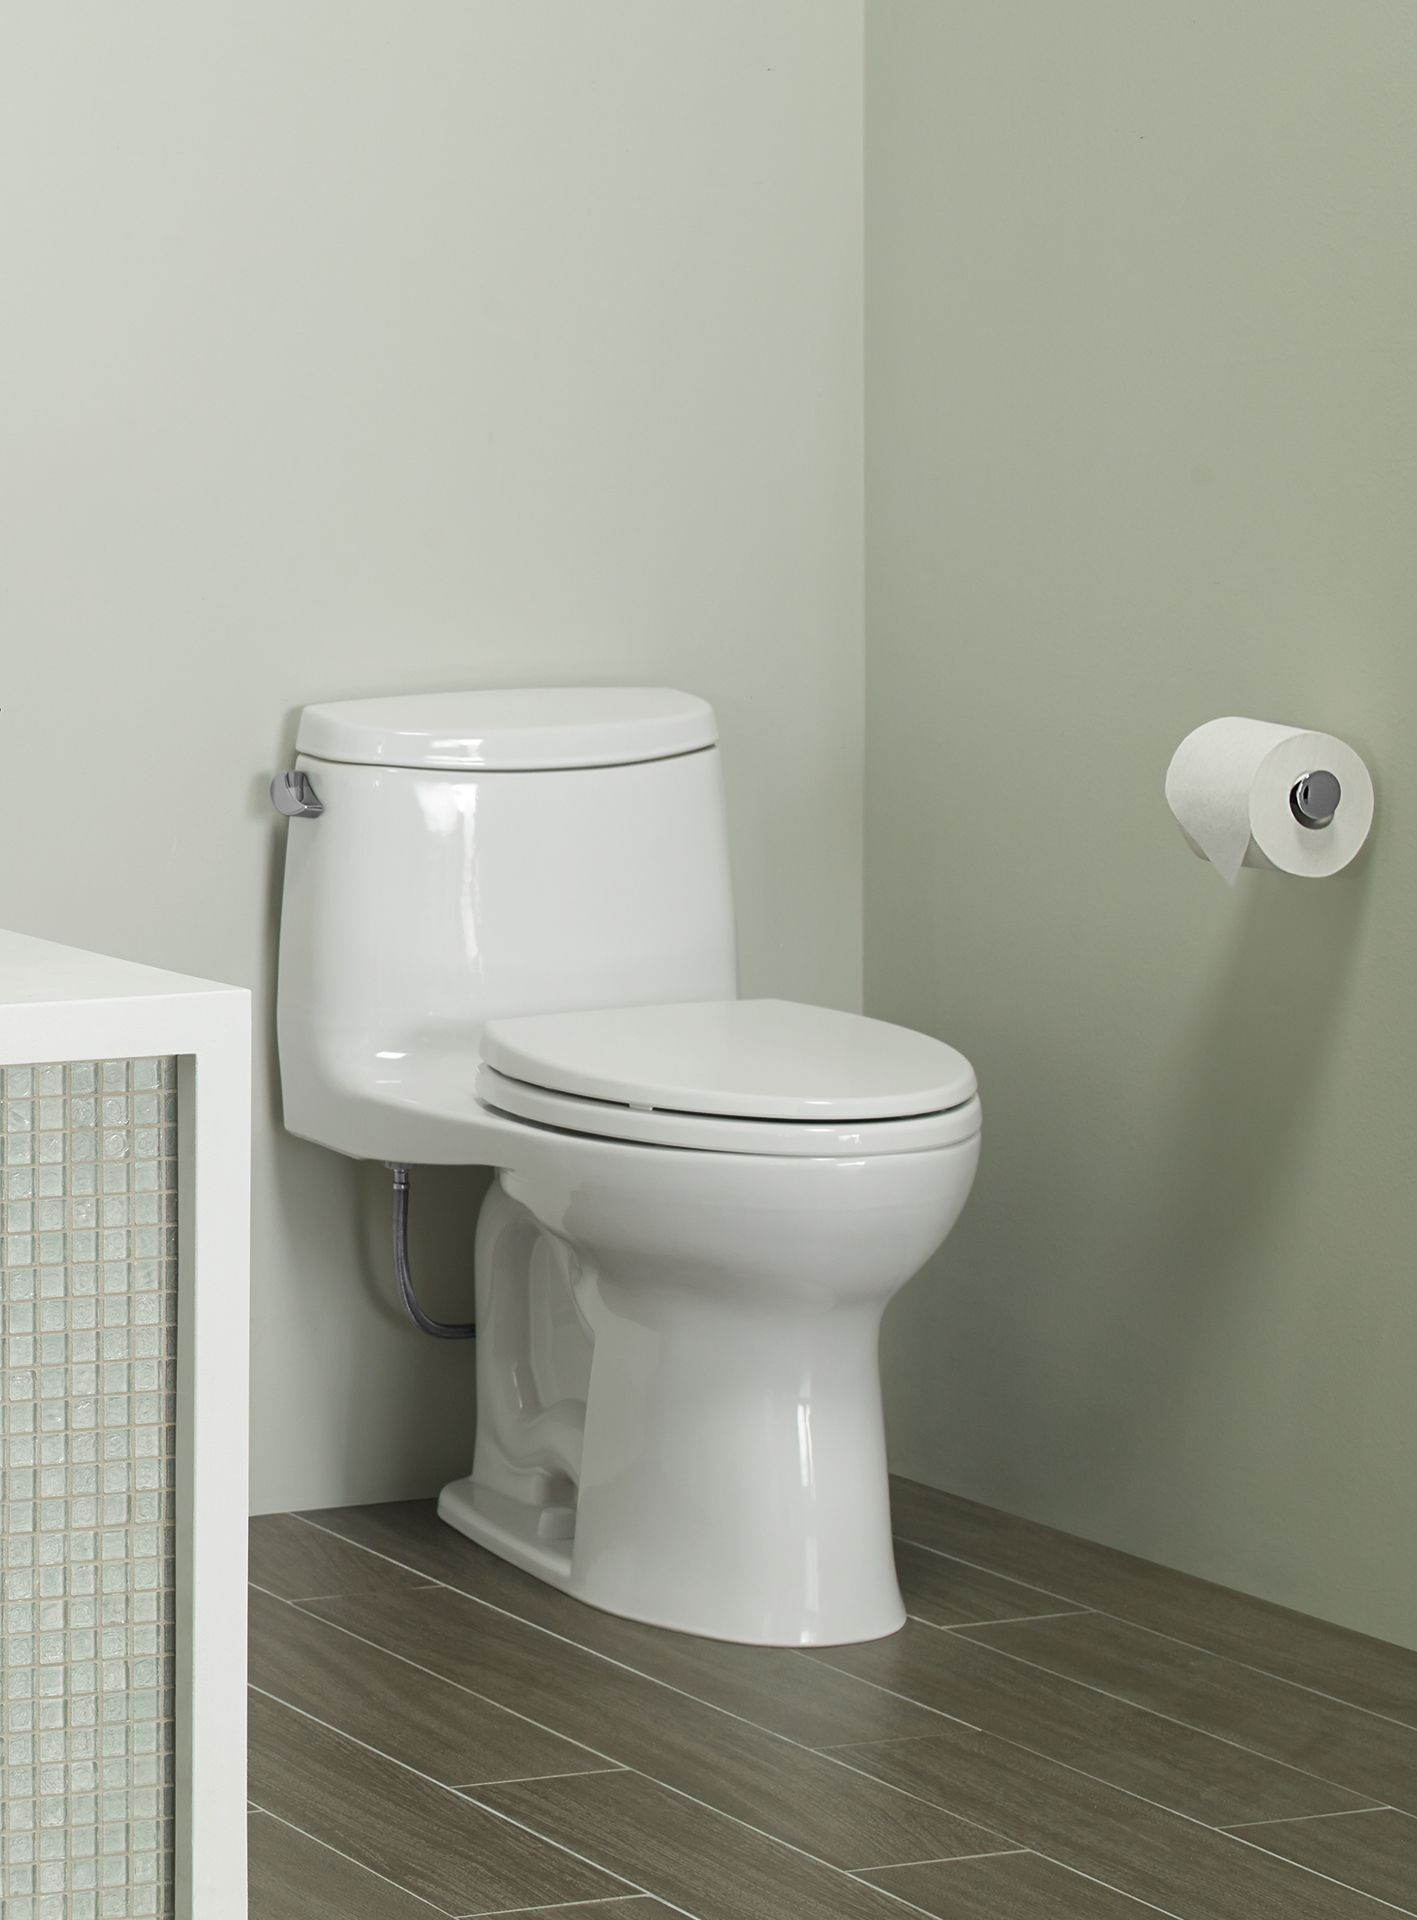 The Post Comparison Of Toto C100 Vs Bio Bidet Bb 600 Appeared First On Best Toilet Amp Bidet Seats One Piece Toilets Contemporary Bathroom Remodel Toilet